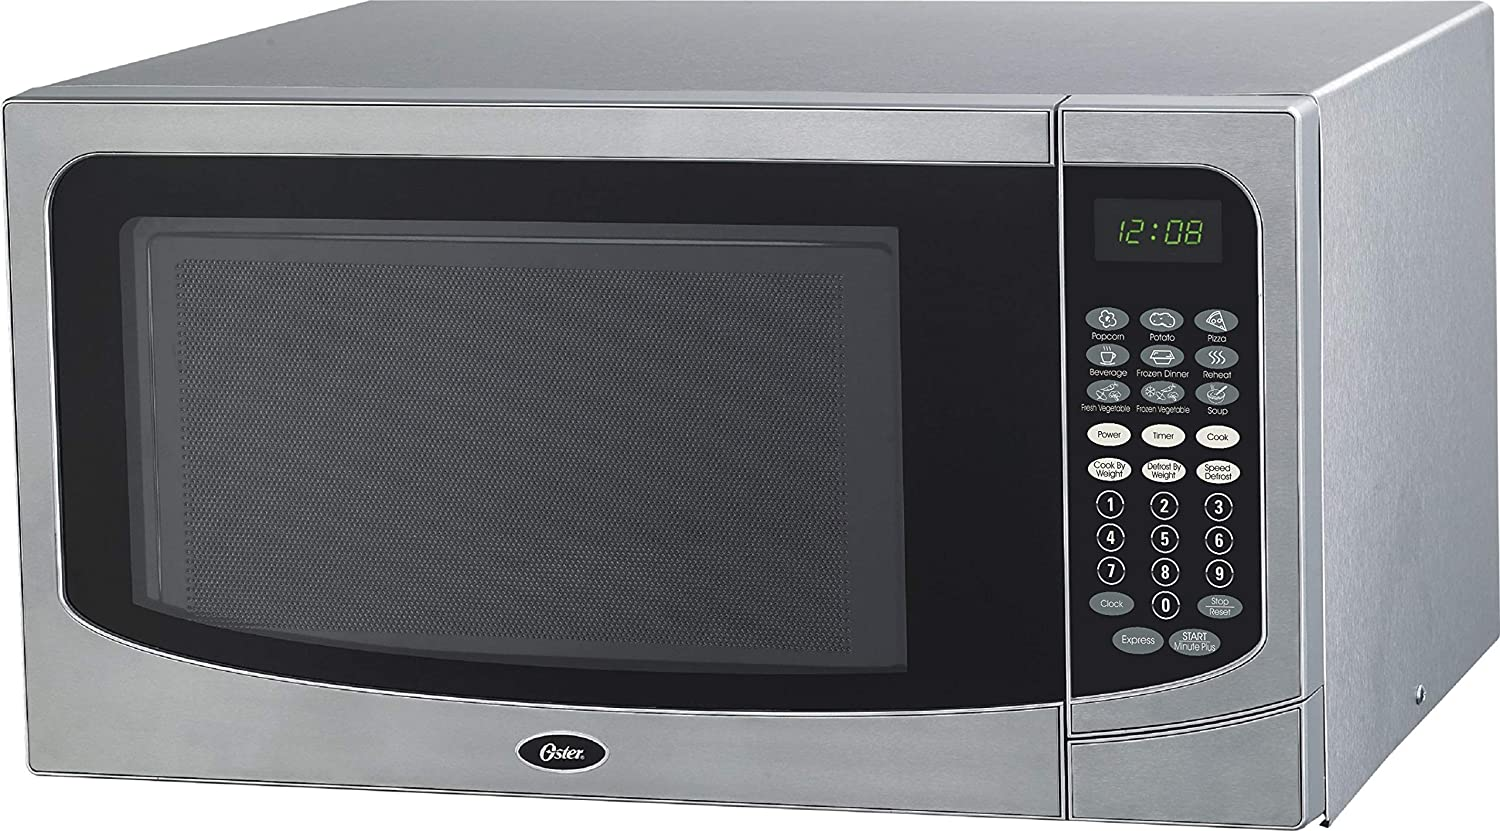 Oster OGCMB916S5-10 Family-Size 1.6-Cu. Ft. 1000W Countertop Microwave Oven, Stainless